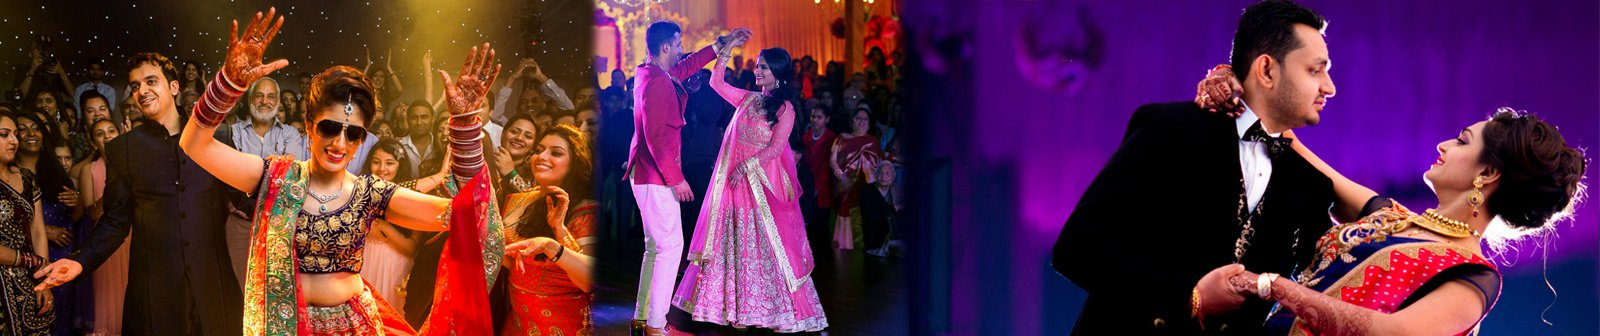 Wedding Choreographer in Faridabad